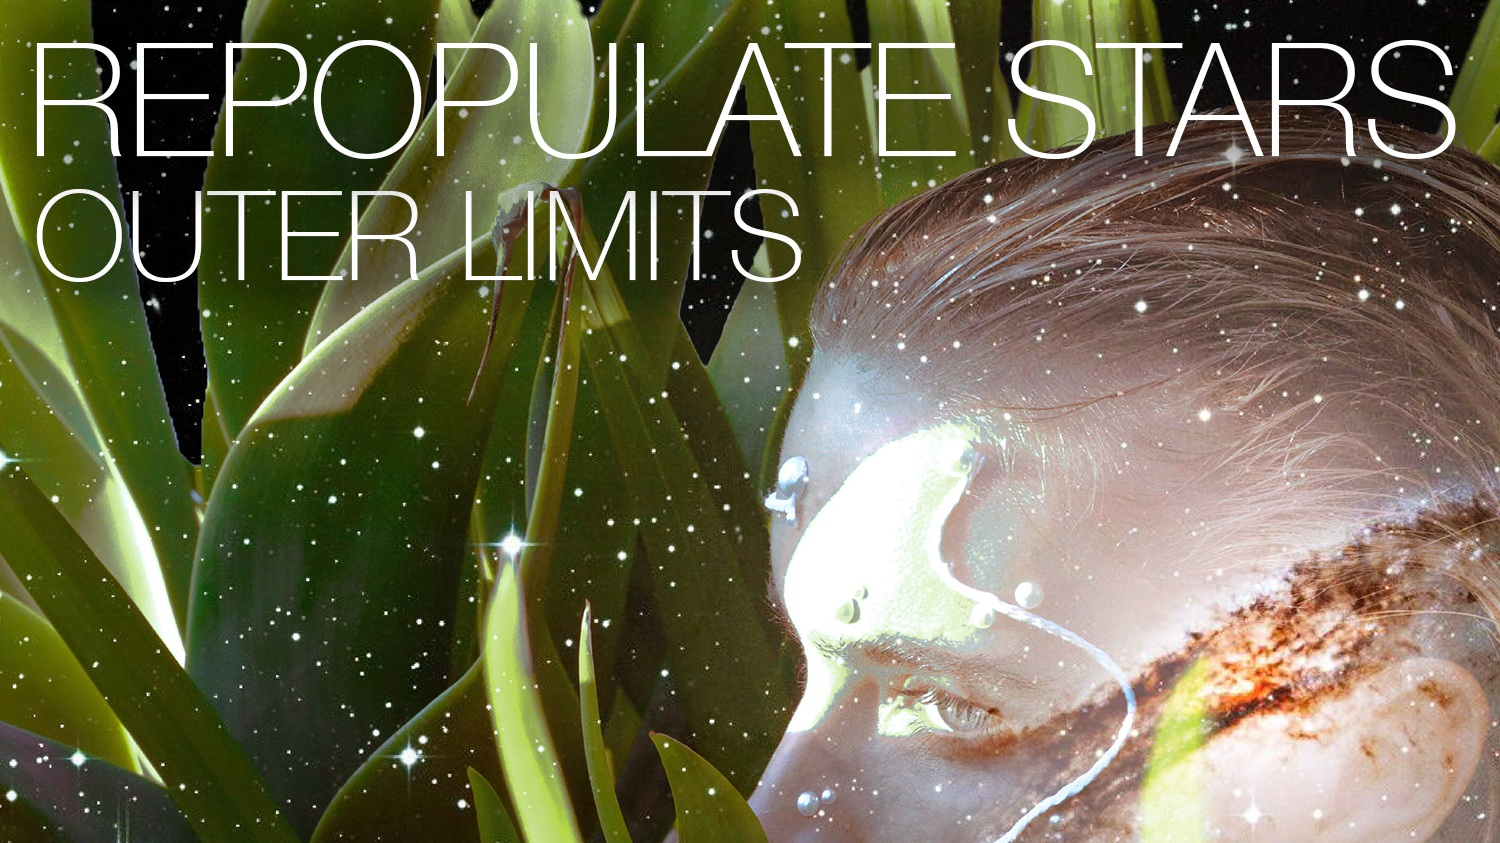 RPM_Repopulate Starts_Outer Limits_Release Artwork.jpg